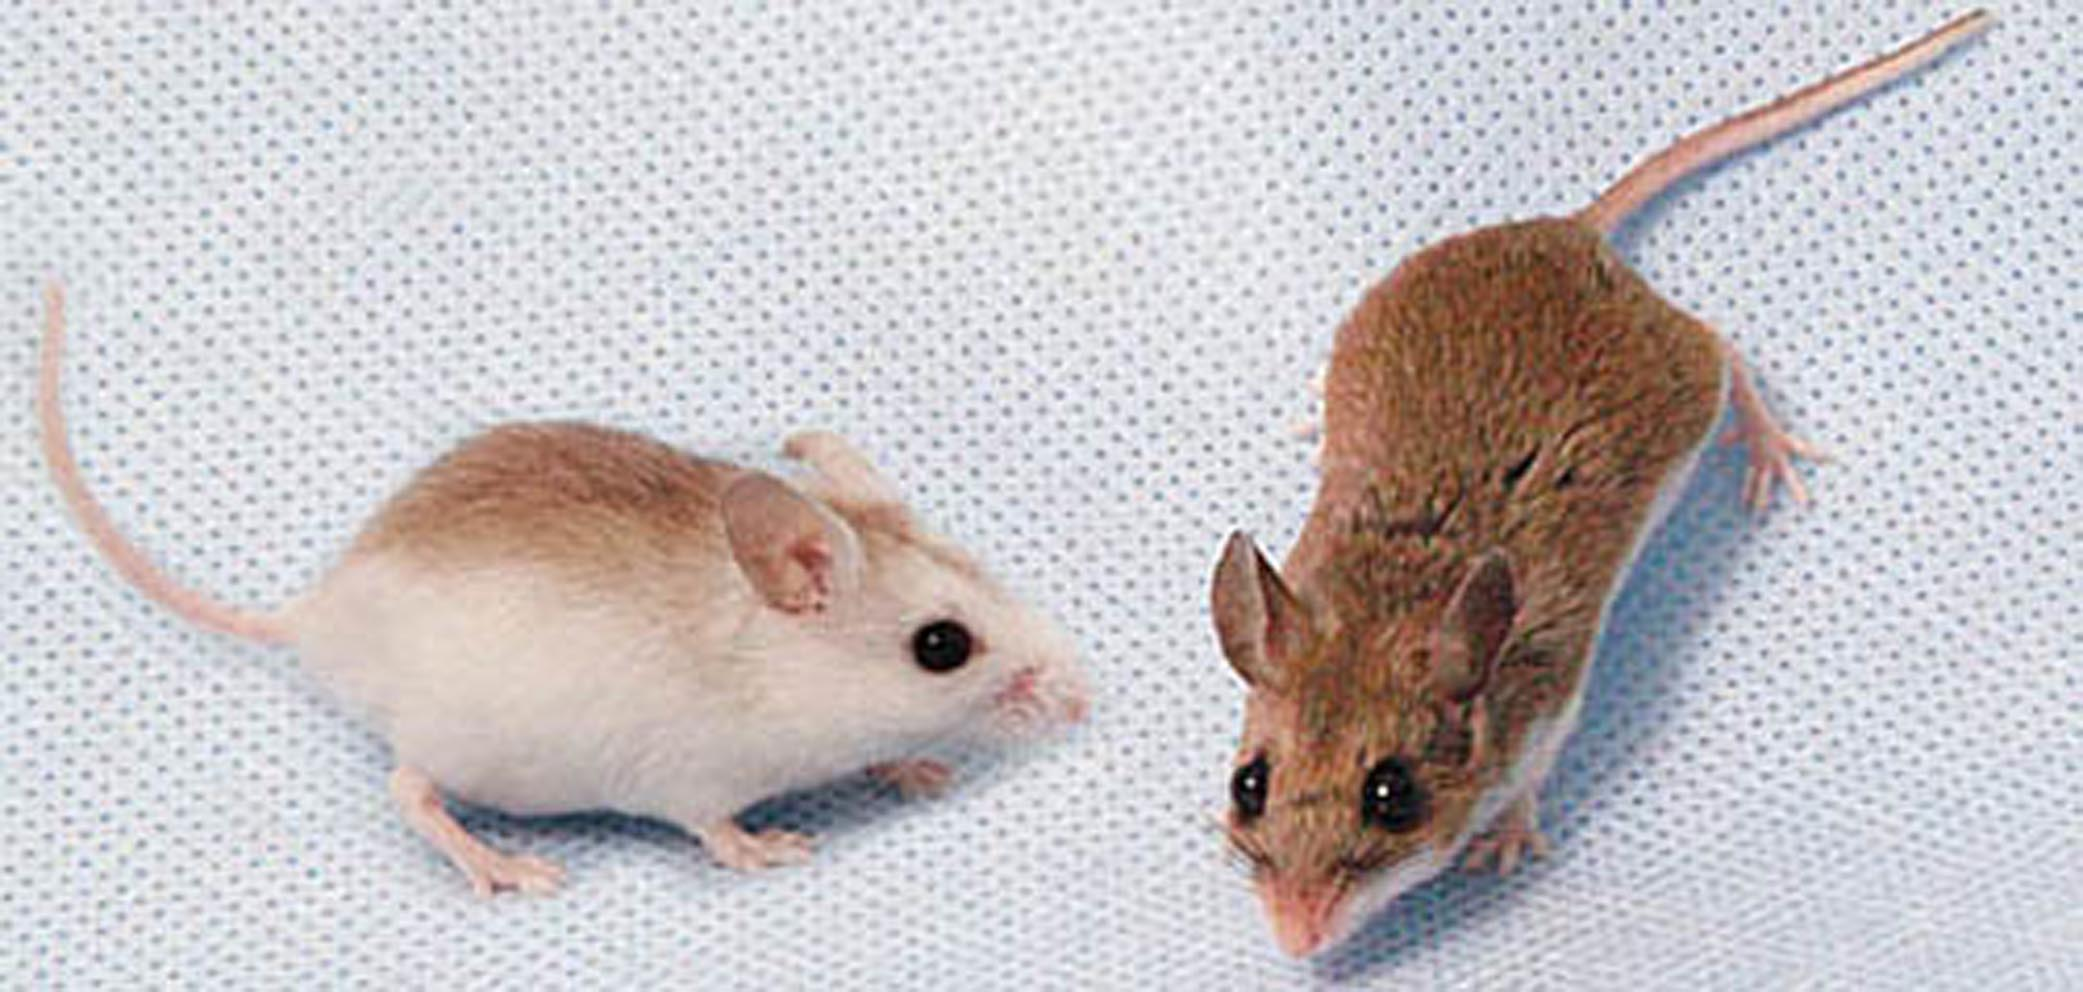 light fur evolved to help beach mice survive on white sand dunes while darker fur help mainland mice survive in fields credit peromyscus genetic stock